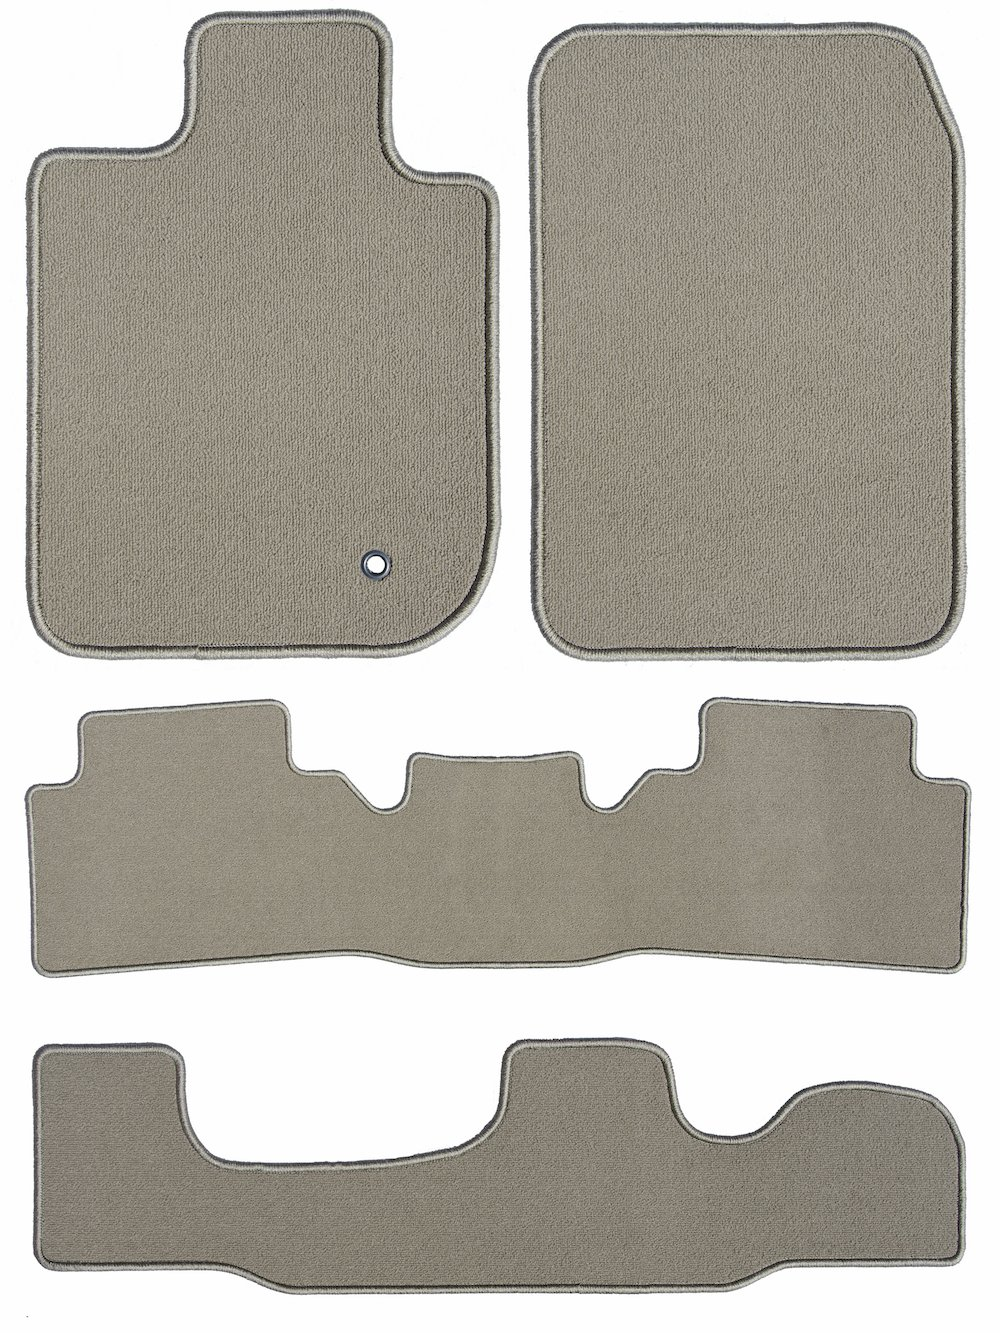 4 Piece Floor 2017 Nissan Quest Beige Loop Driver Passenger GGBAILEY D3602A-LSA-BG-LP Custom Fit Car Mats for 2011 2013 2012 2015 2016 2014 2nd /& 3rd Row